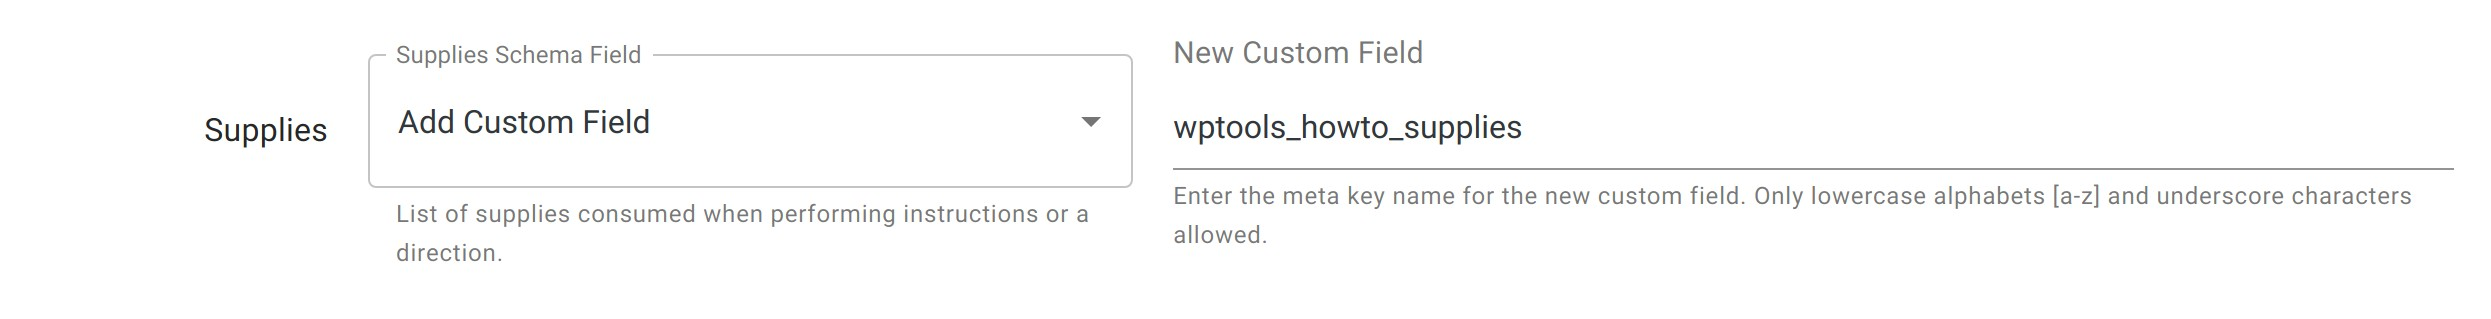 Supplies Field - HowTo Schema - WordPress Schema Plugin